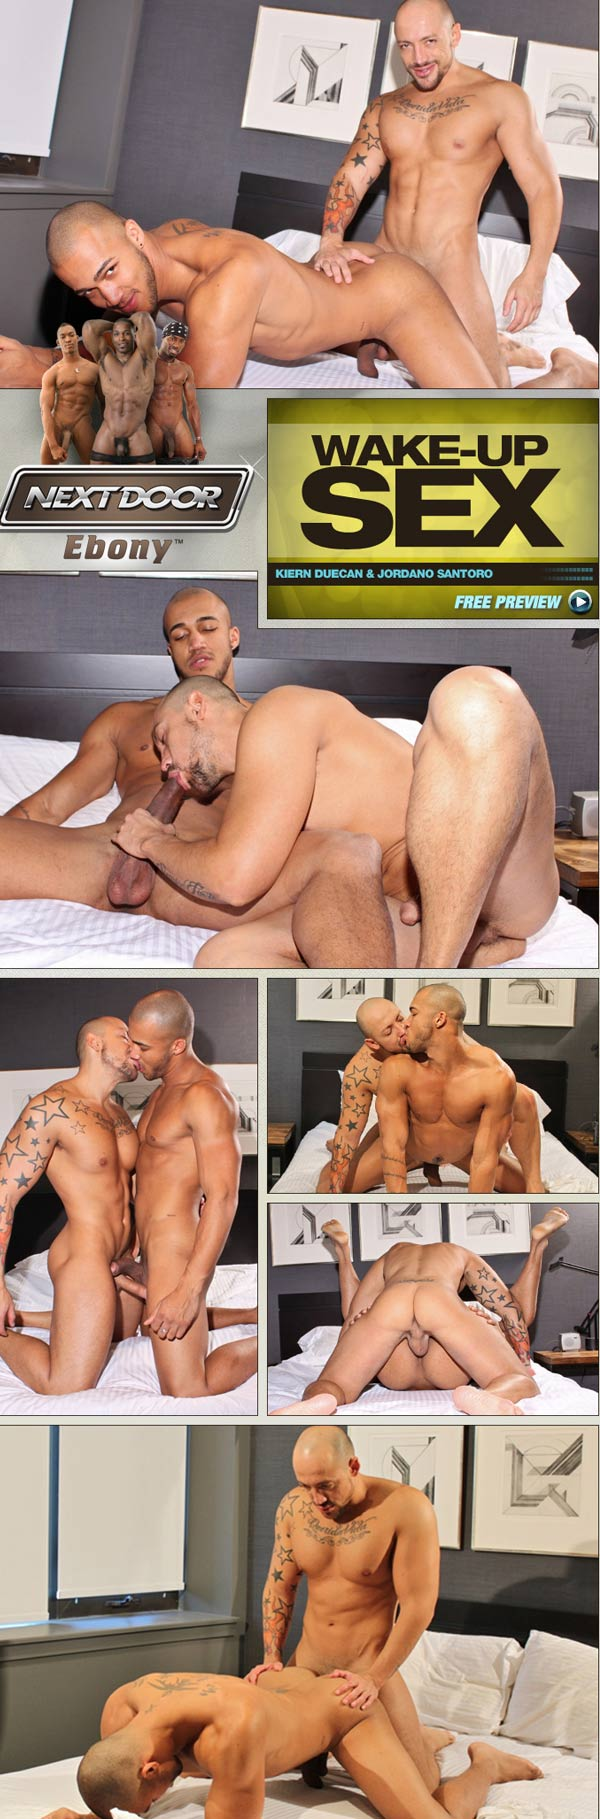 Wake-Up Sex (Kiern Duecan & Jordano Santoro) at NextDoorEbony